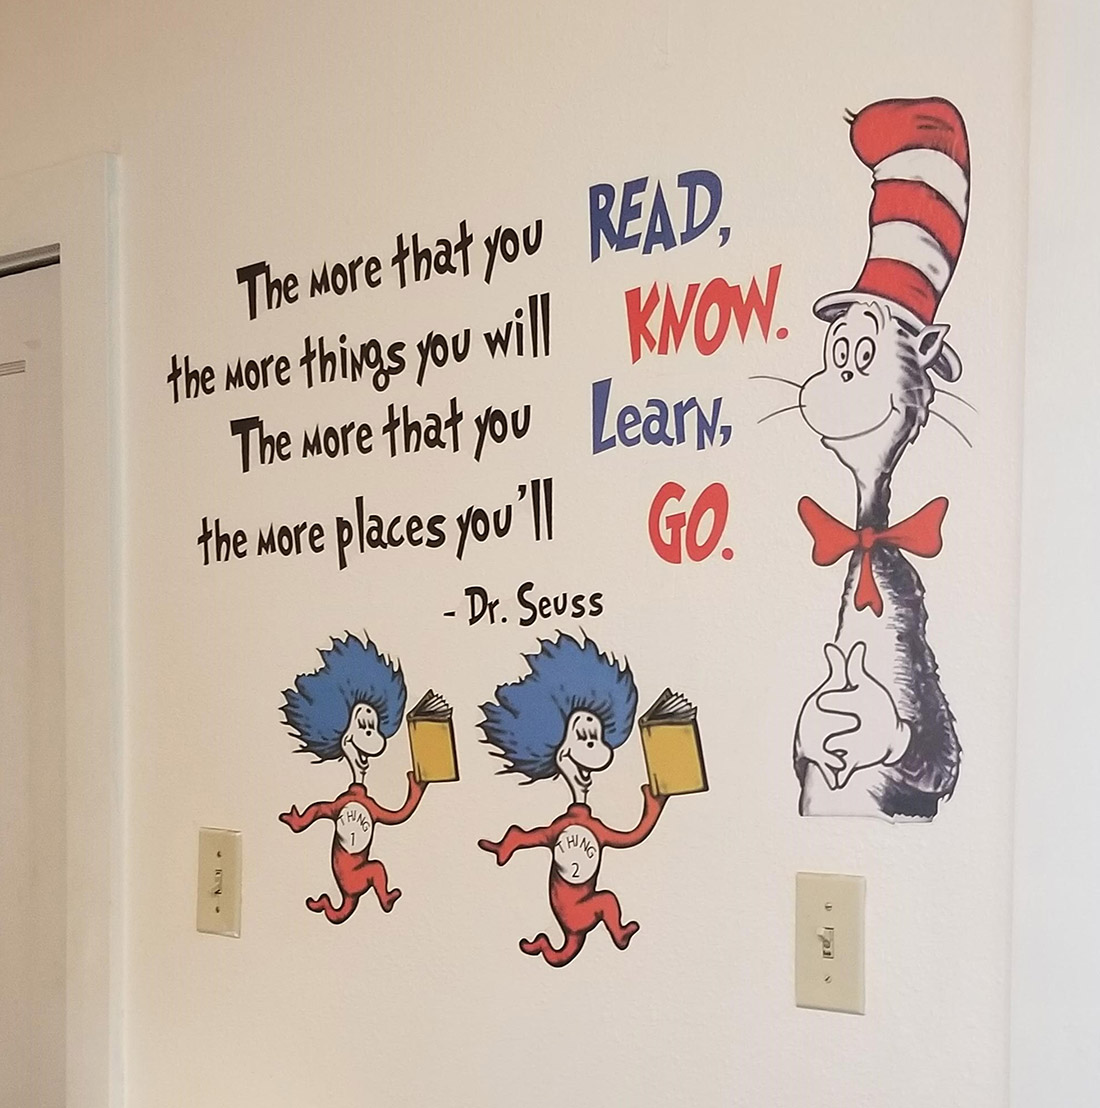 Dr. Suess and Cat in the Hat on the wall of New Beginnings Childcare Center in Farmington, NM